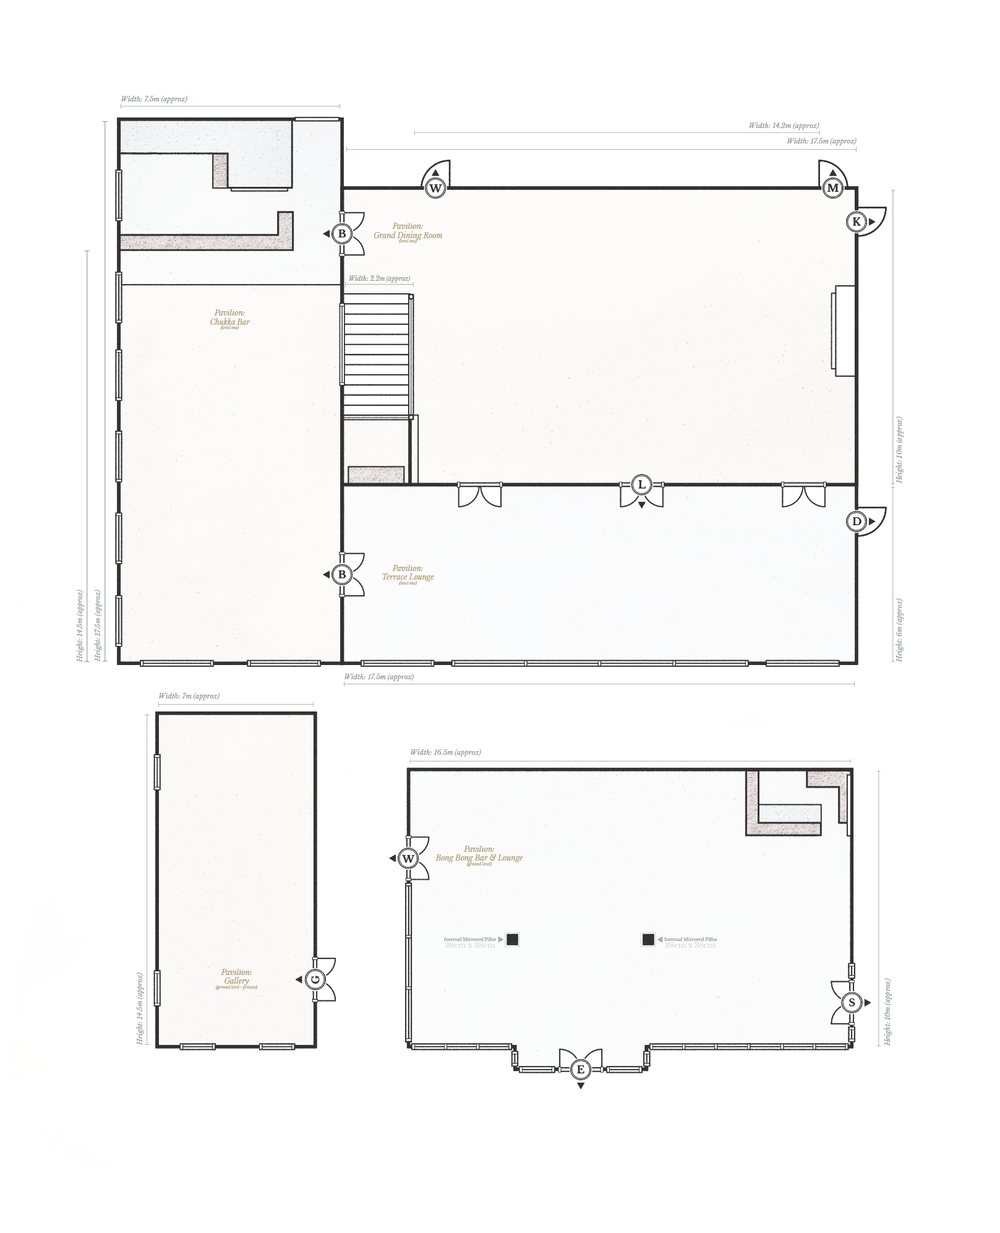 Hopewood House - Pavilion - Floor Plans (Ground Level + Level One) - Measurements